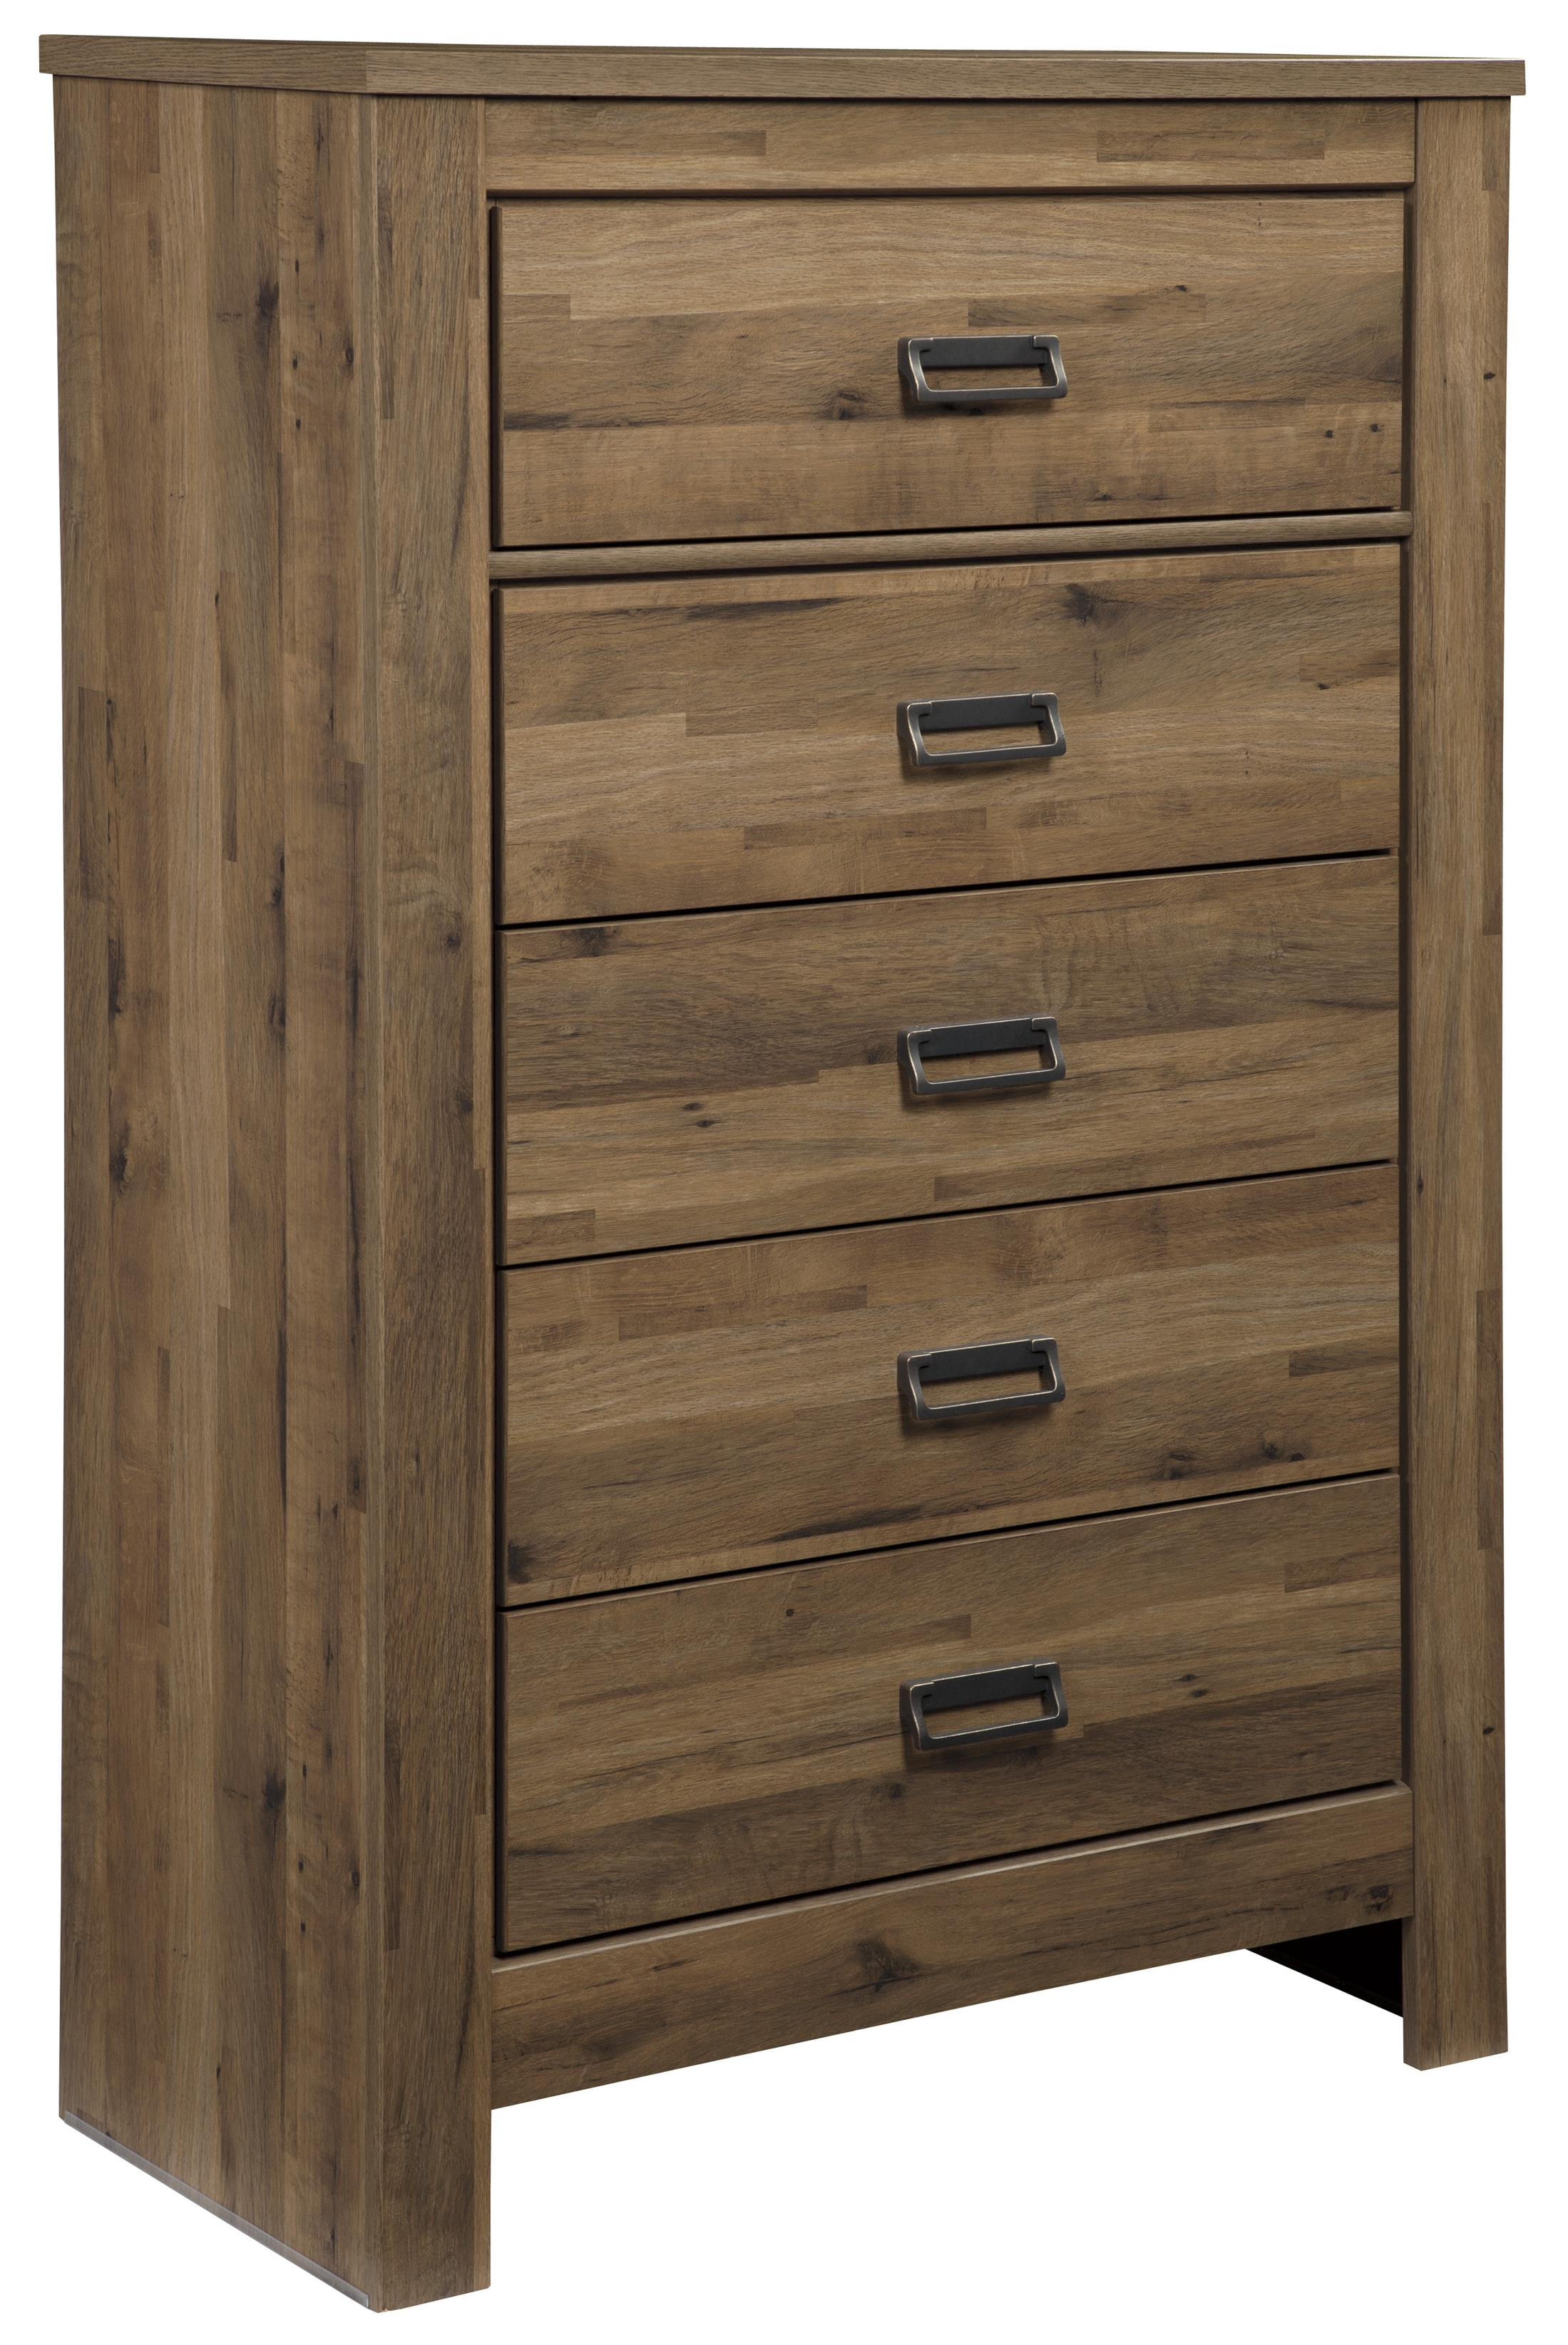 Signature Design by Ashley Cinrey Five Drawer Chest - Item Number: B369-46